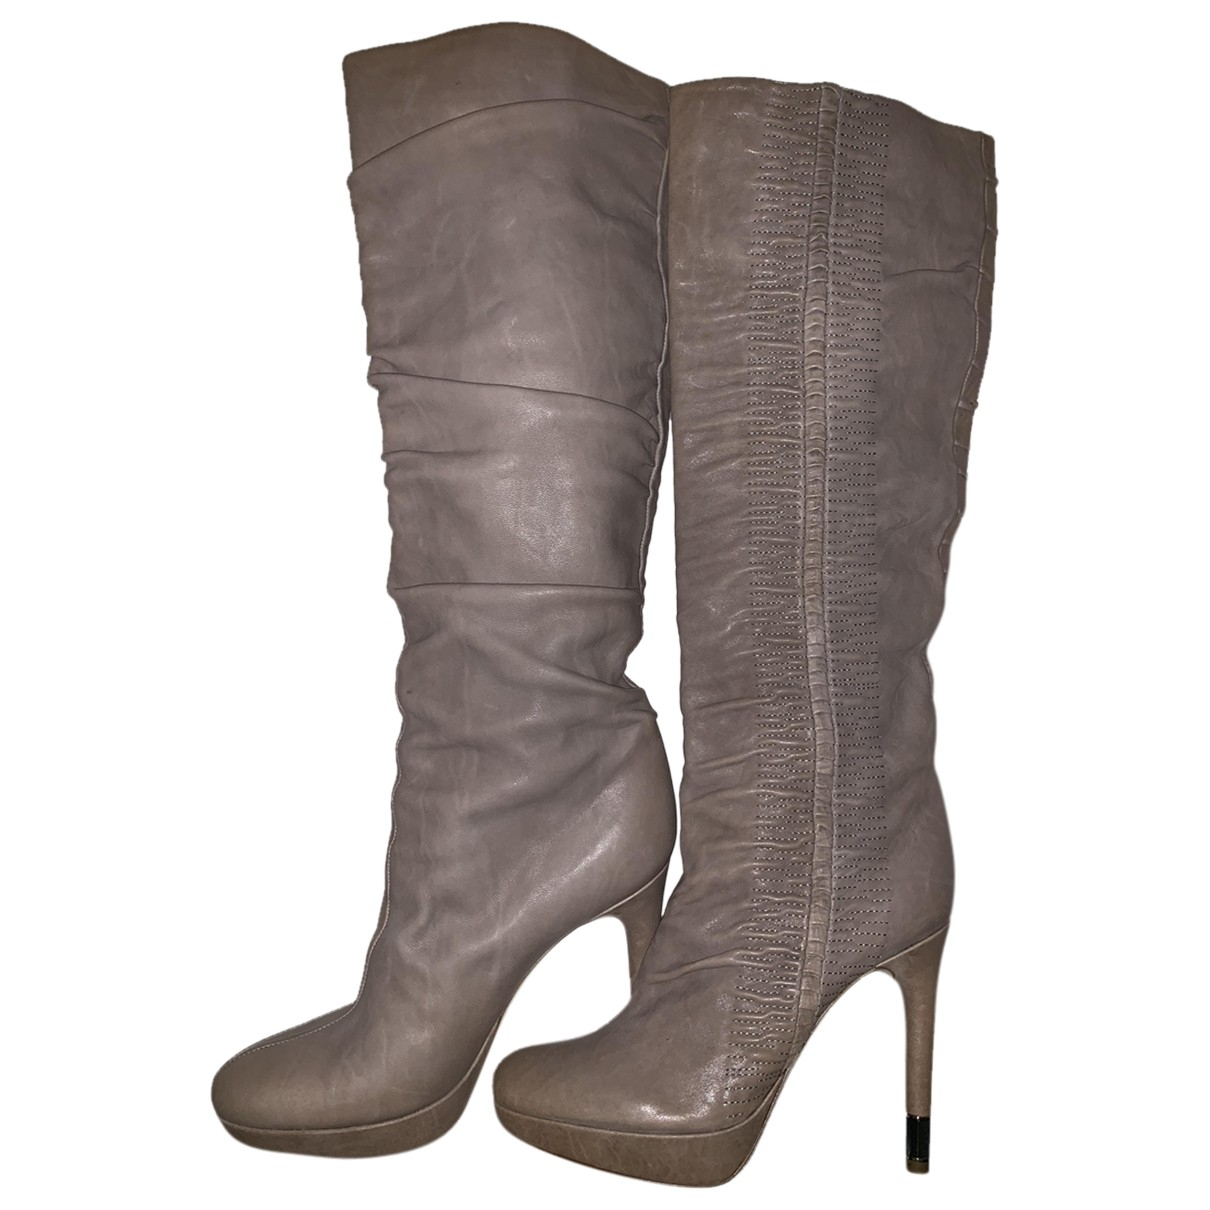 Dior \N Beige Leather Boots for Women 38 EU